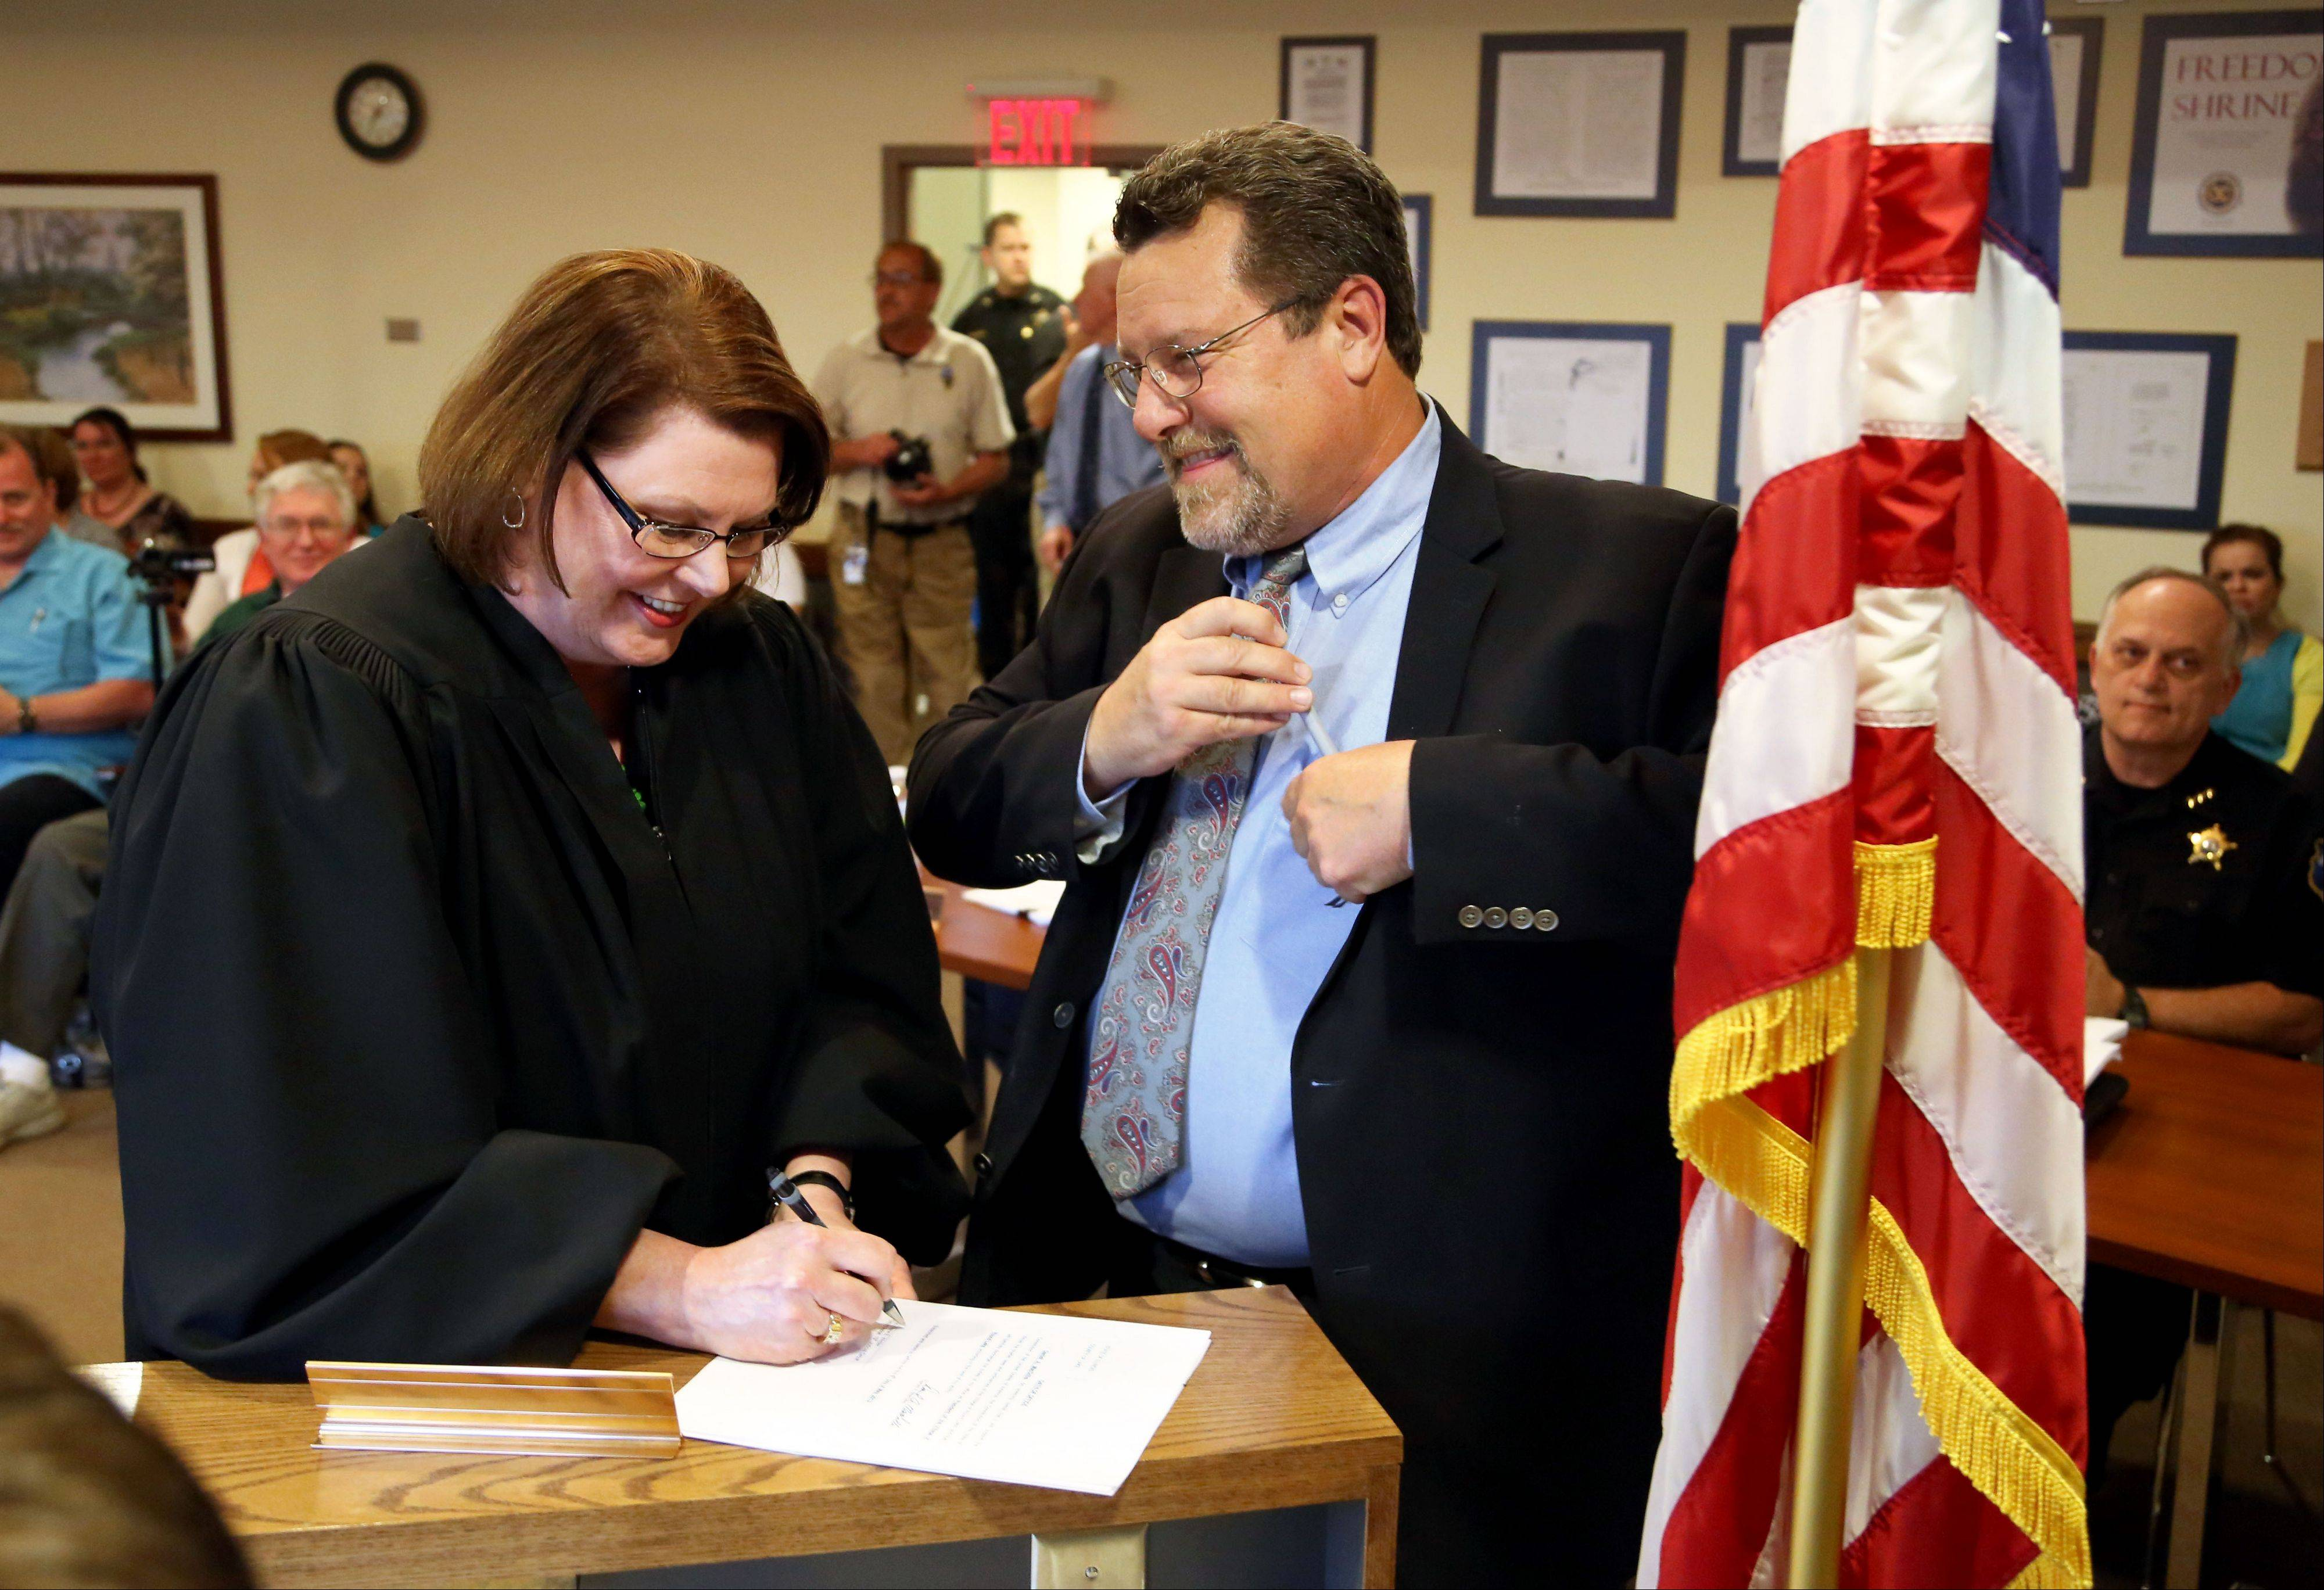 Daniel MacGillis is all smiles after being sworn in as the new mayor of Round Lake by Judge Diane Winte during the village board meeting Monday night.